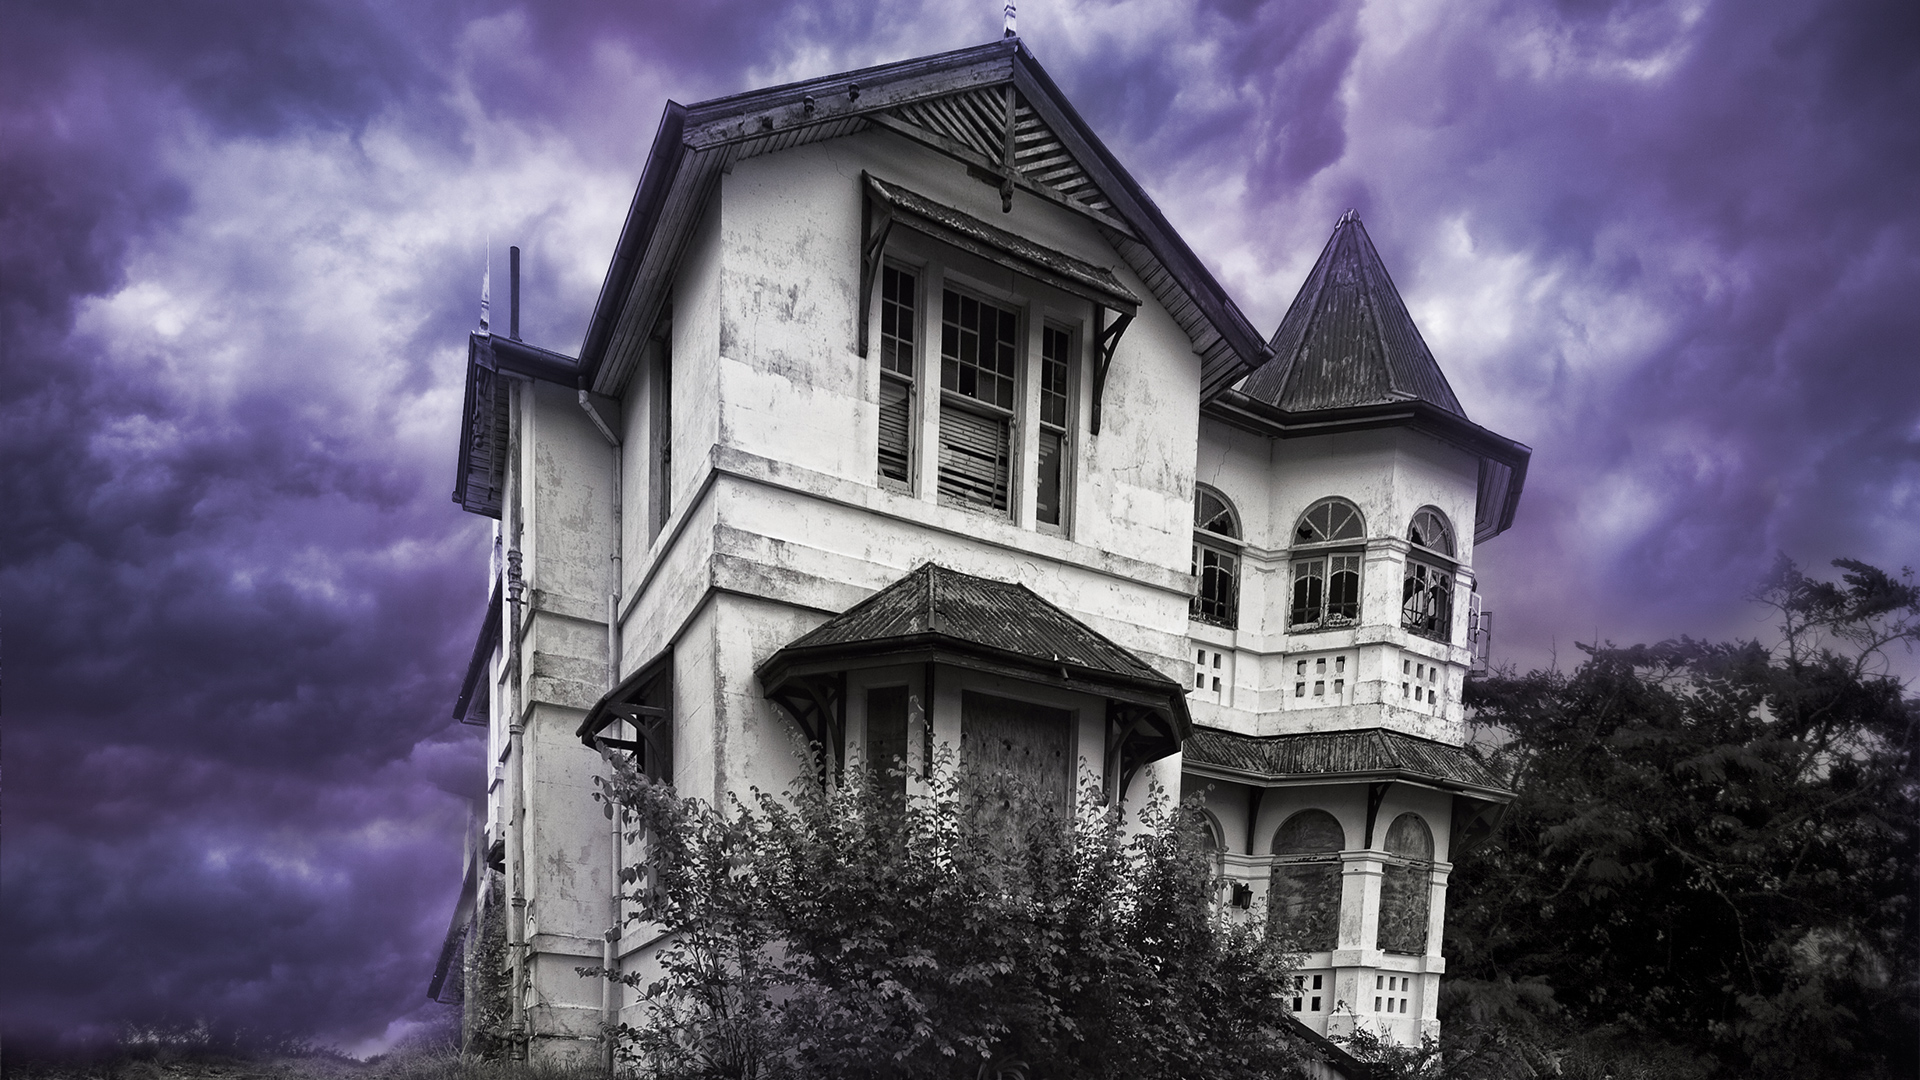 A Derelict Old Mansion On Top Of Hill